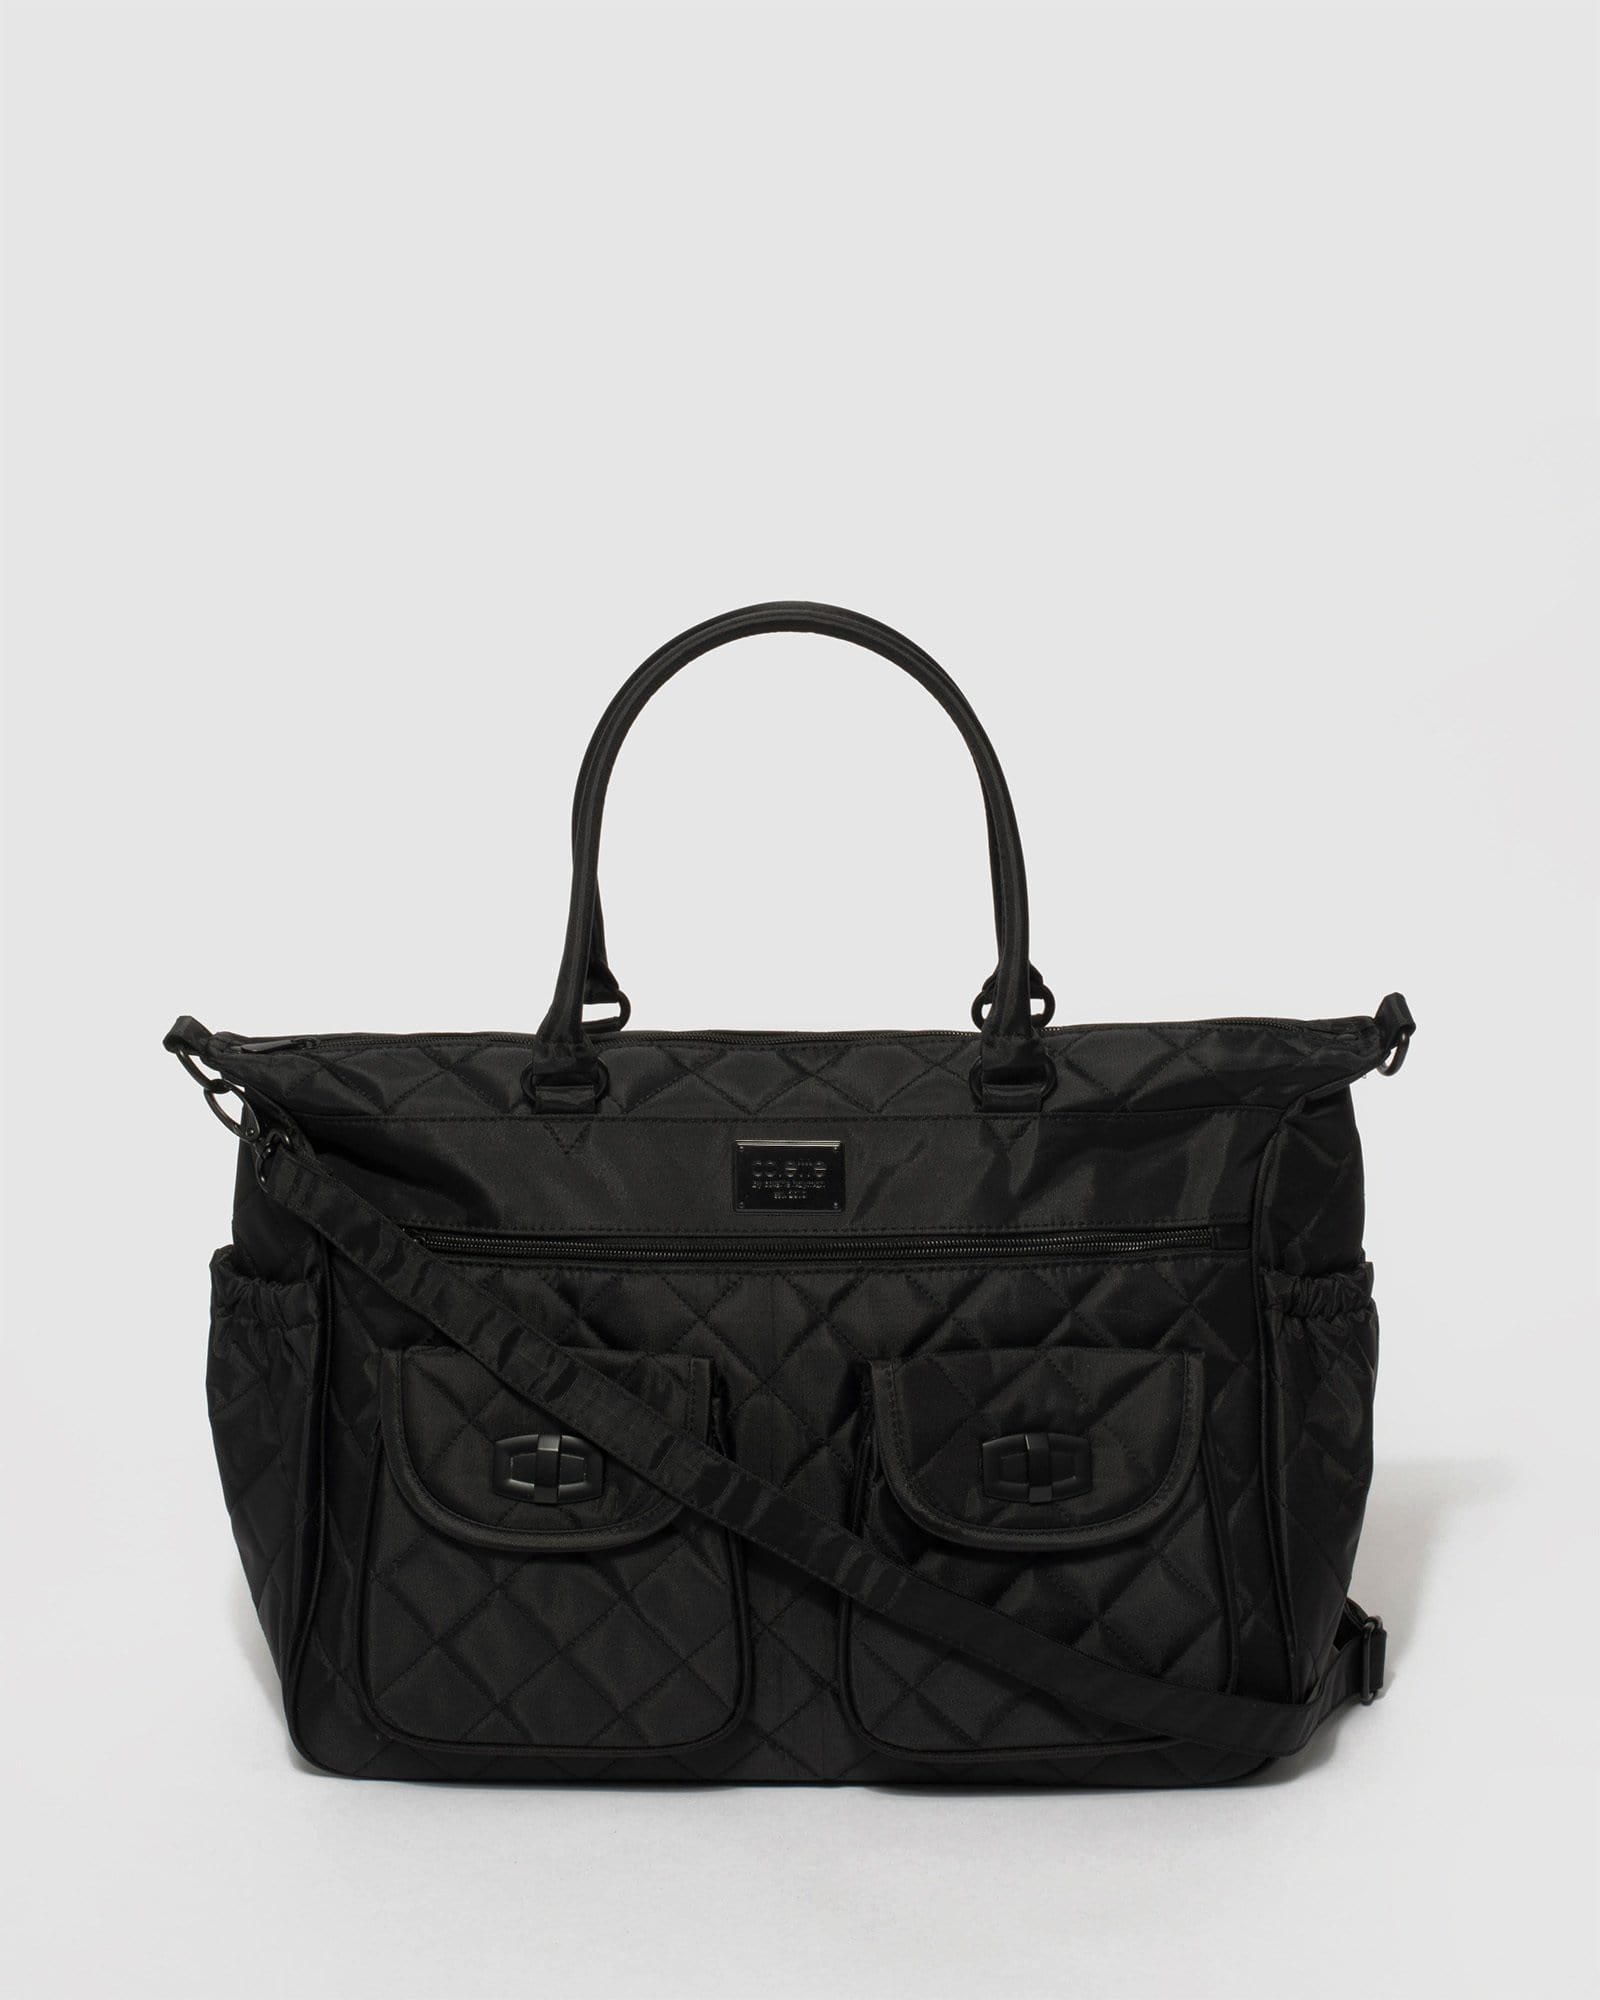 Image of Black Quilted Baby Travel Bag